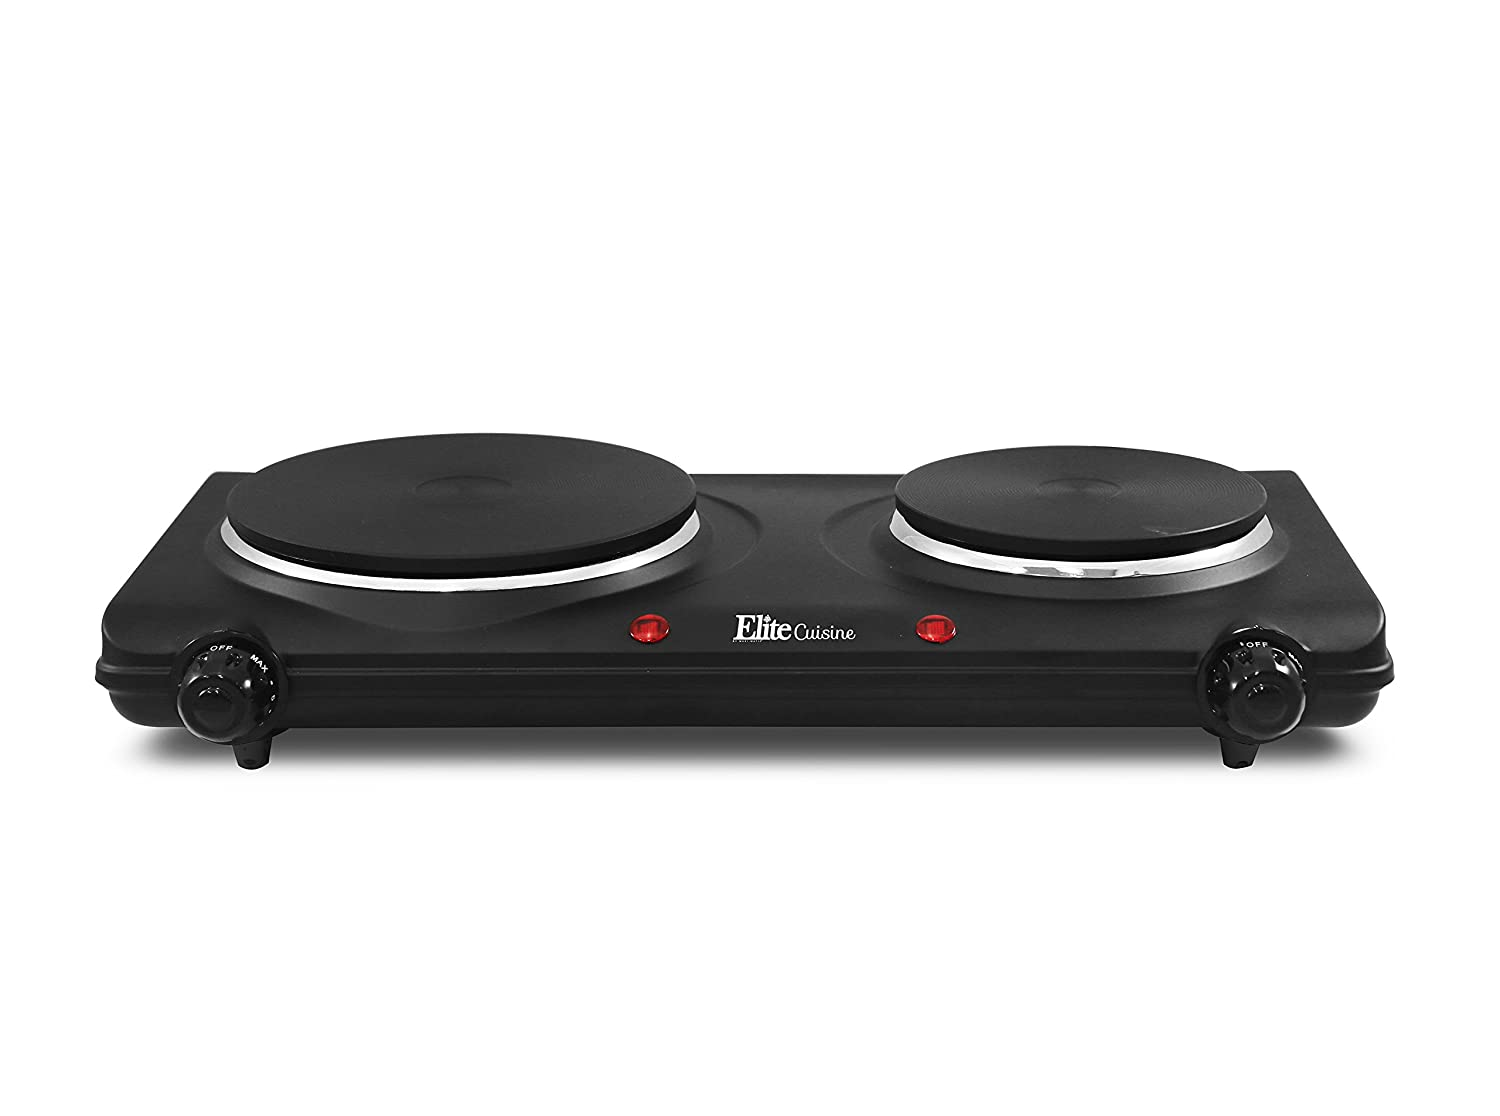 Elite Cuisine EDB-302BF Double Electric Hot Plate Burner Dual Temperature Controls, Power Indicator Lights, Easy To Clean 1440 Watts Black